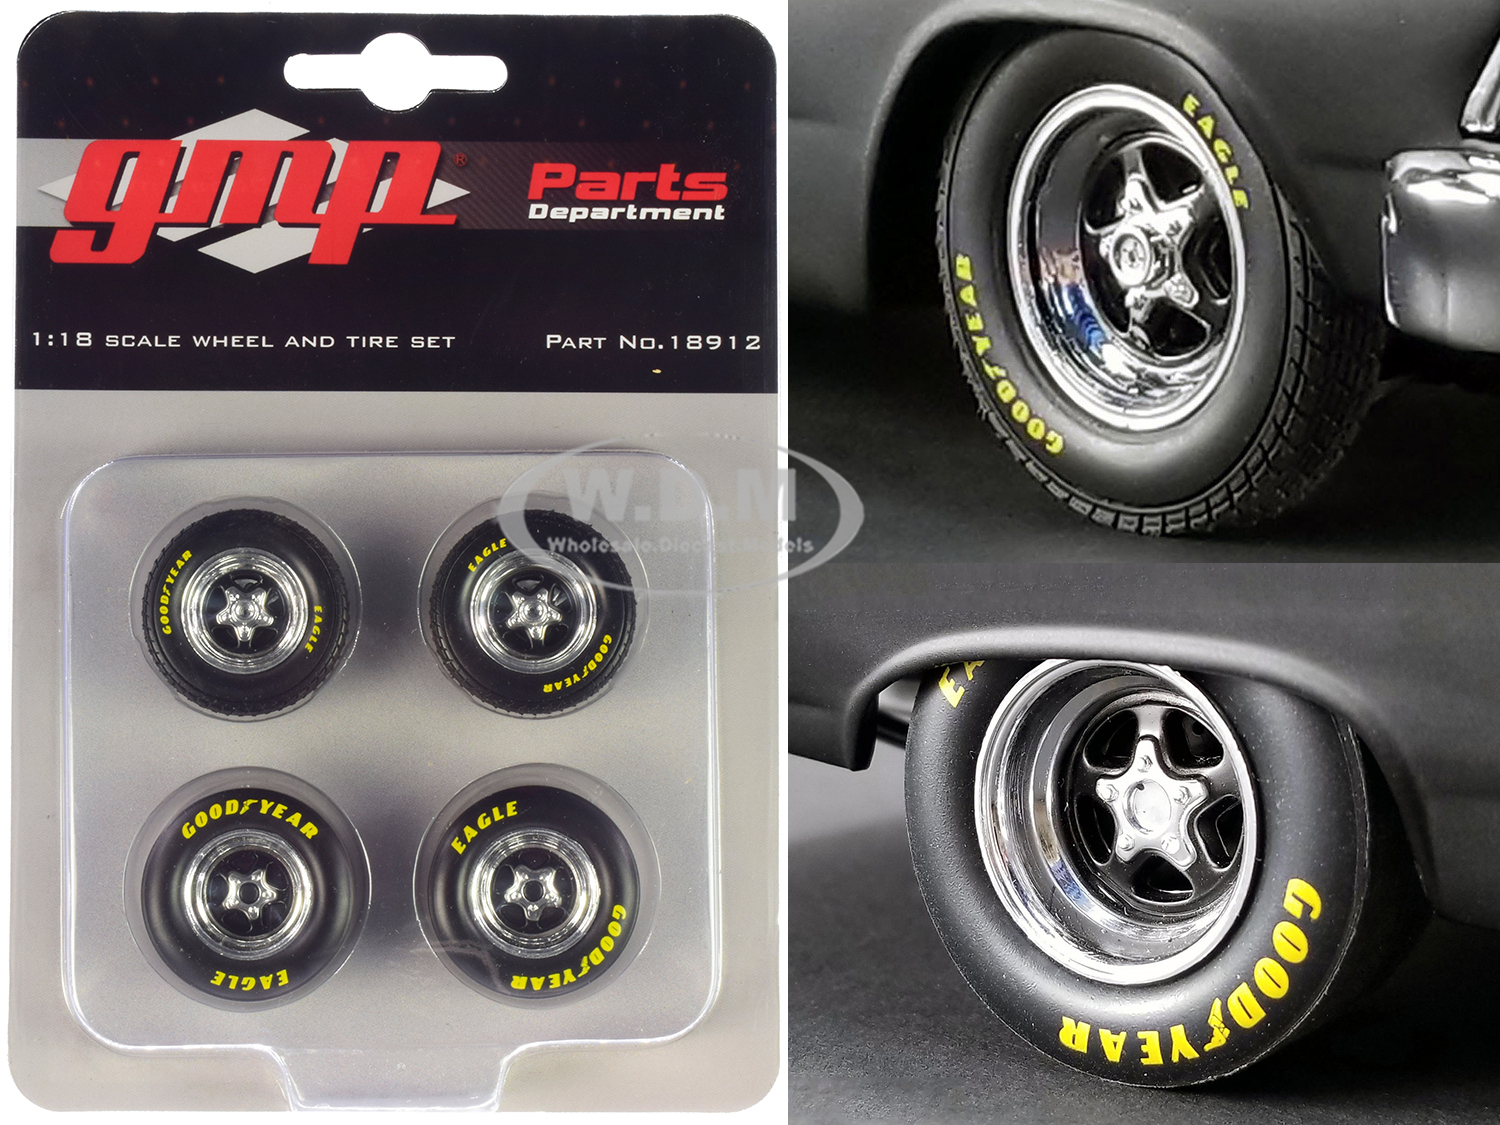 Pro Star 5-Spoke Drag Wheels and Tires Set of 4 pieces from